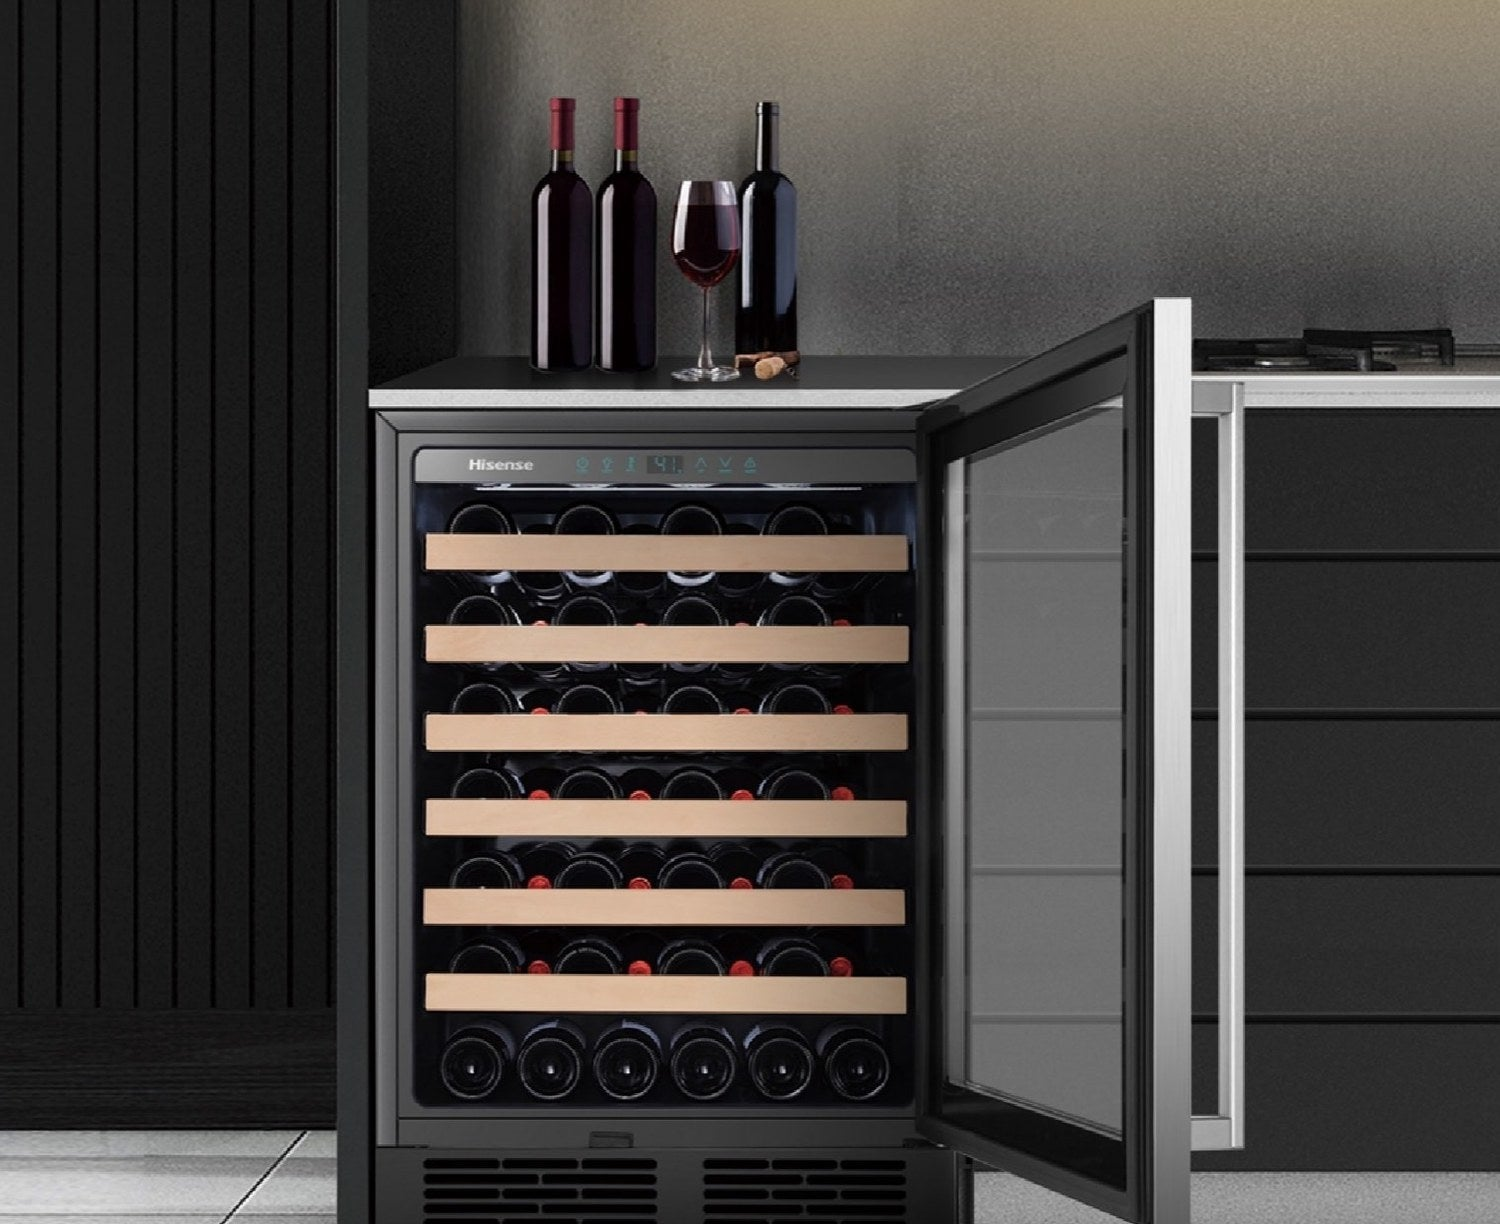 the mini fridge-shaped wine cooler with six tan shelves holding a variety of wine bottles